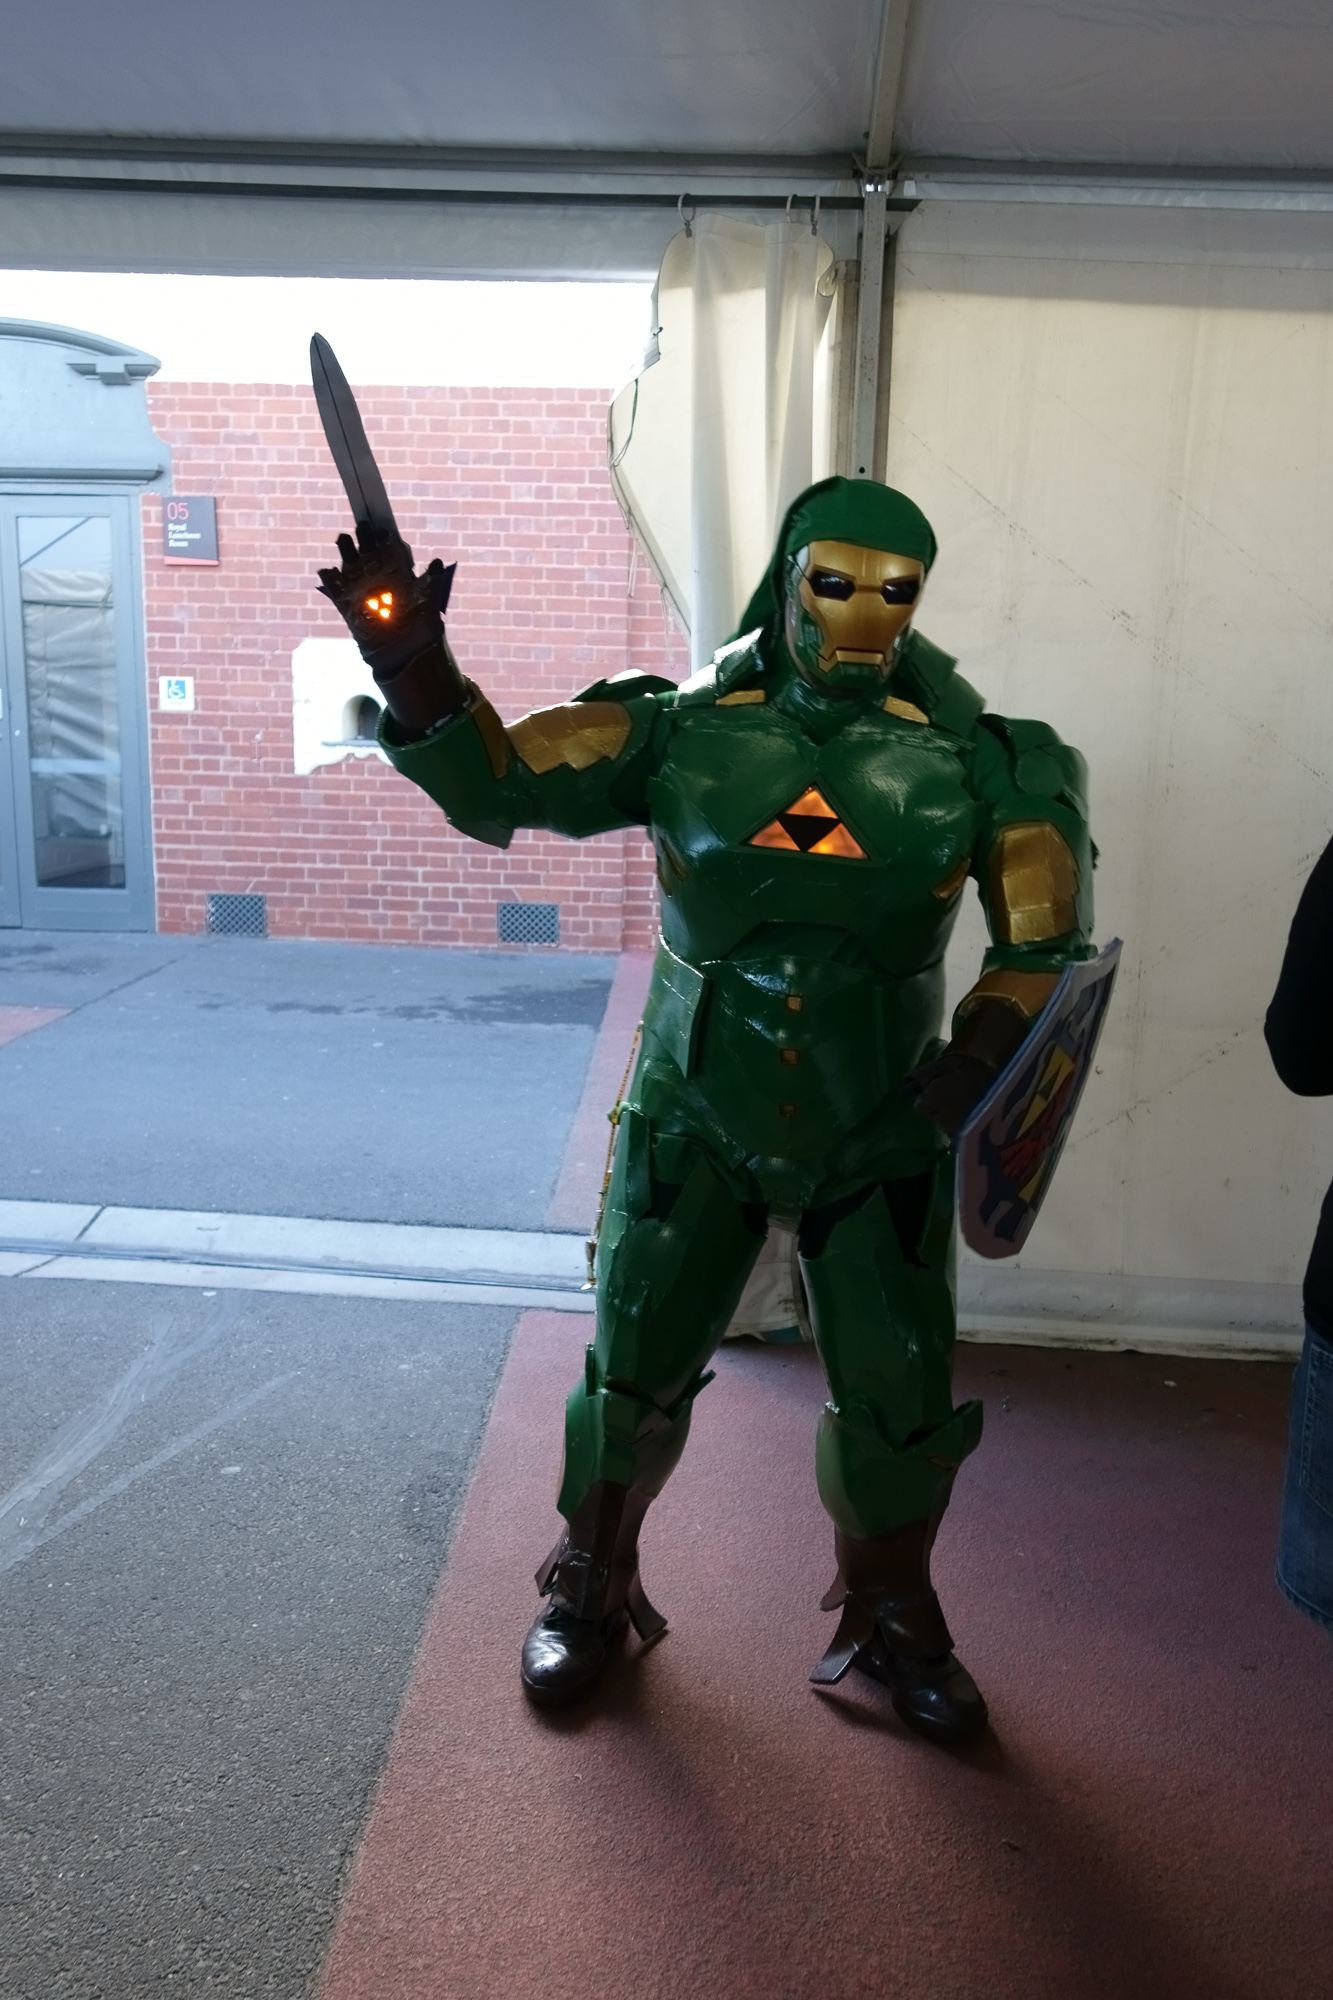 And the prize for best cosplay goes to this guy, who combined Link with Iron Man